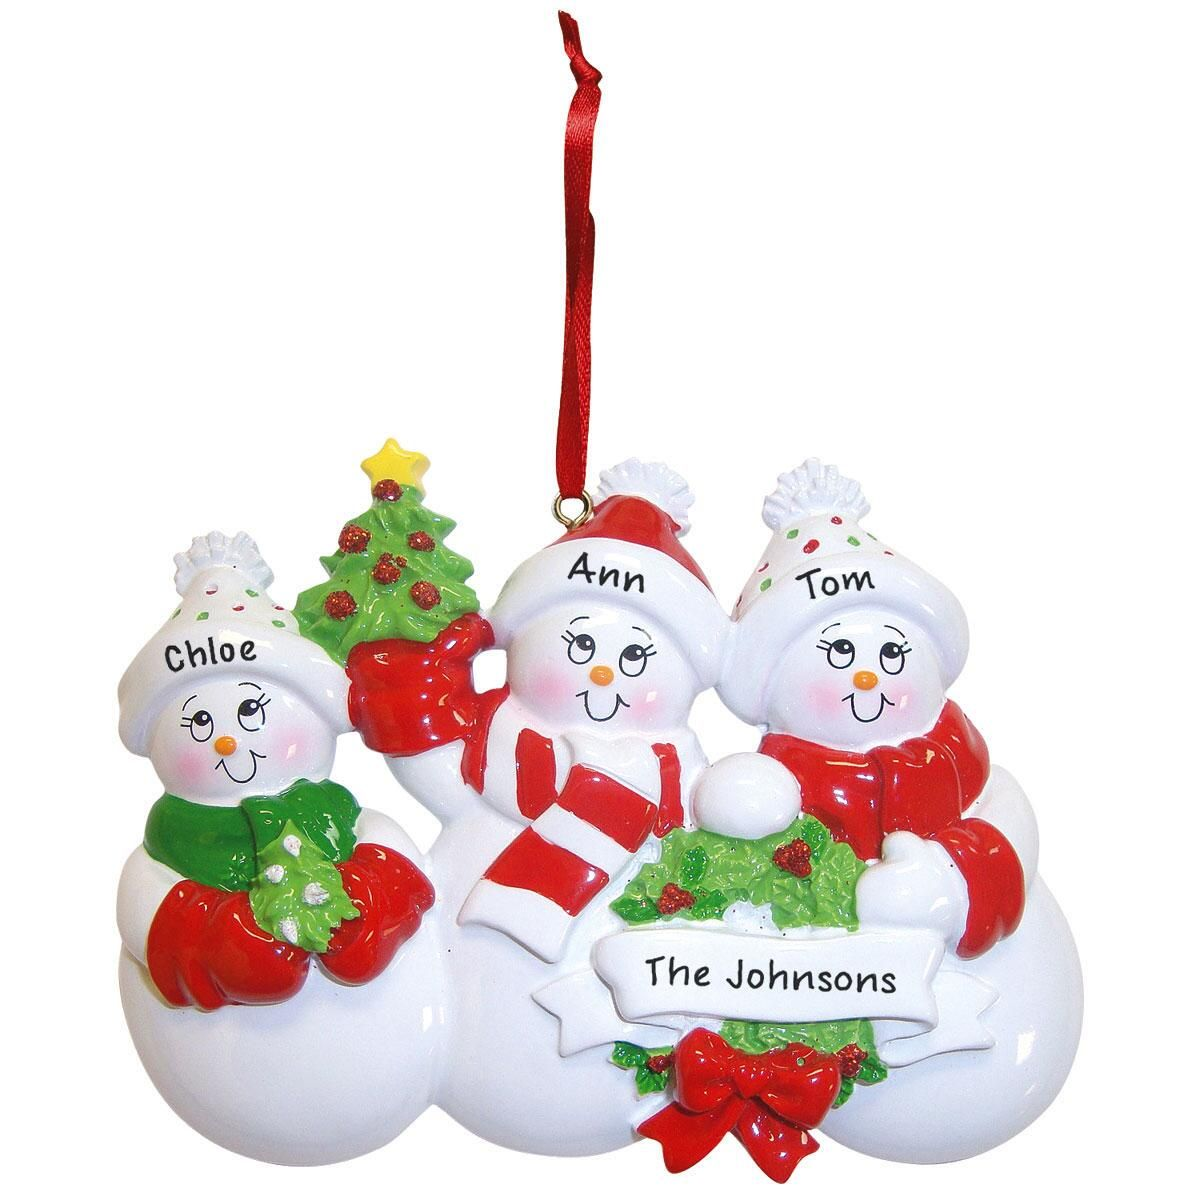 Glittered Snowman Ornaments